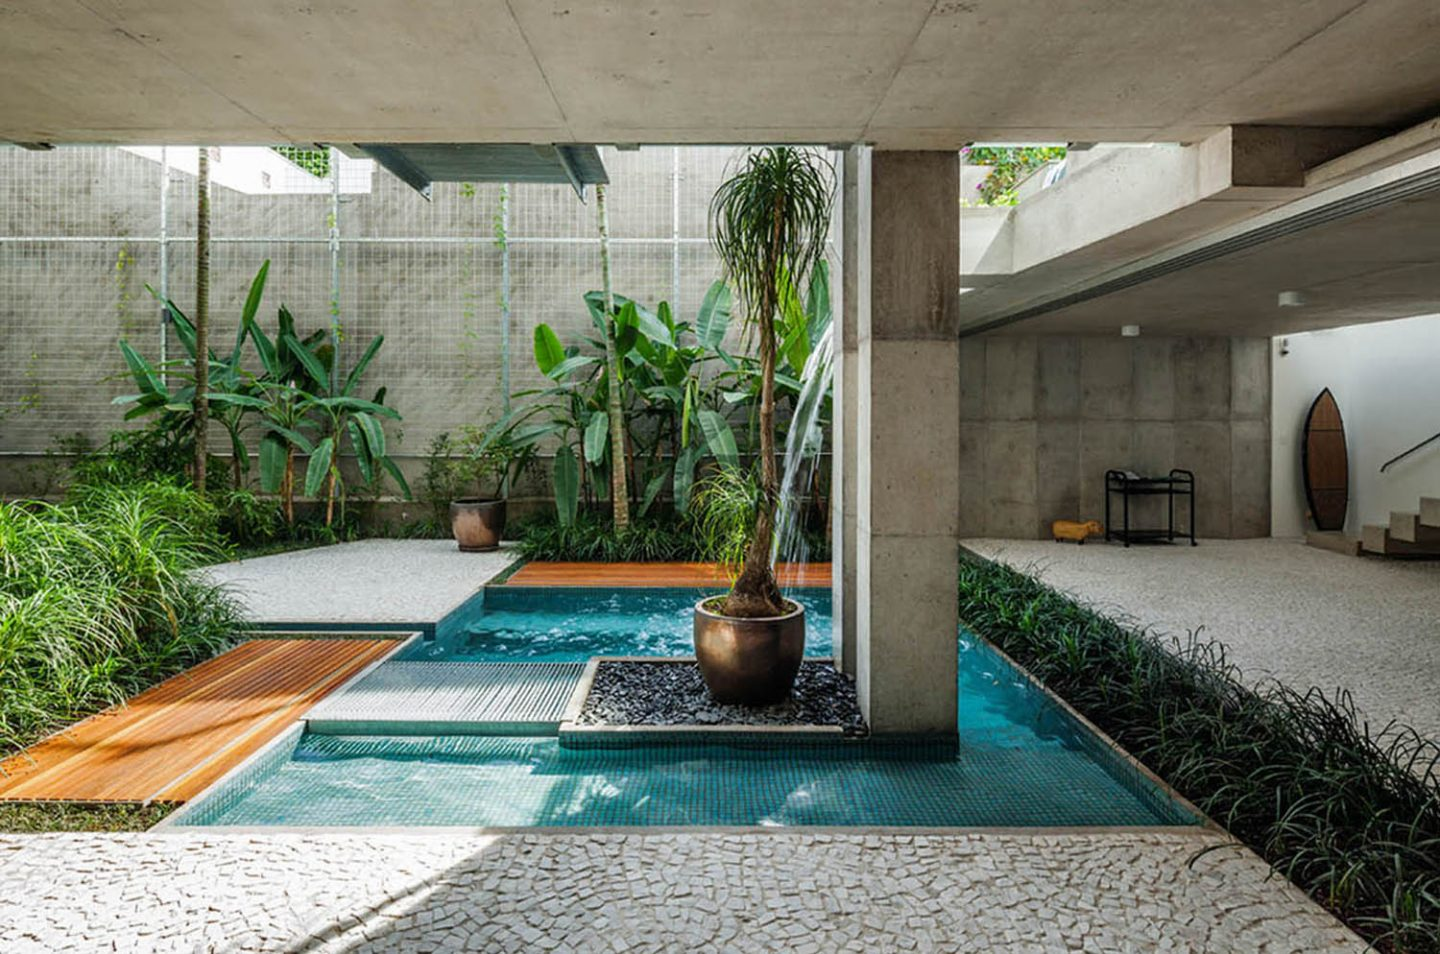 iGNANT_Architecture_SPBR_Architects_Weekend_House_In_Sao_Paulo_12